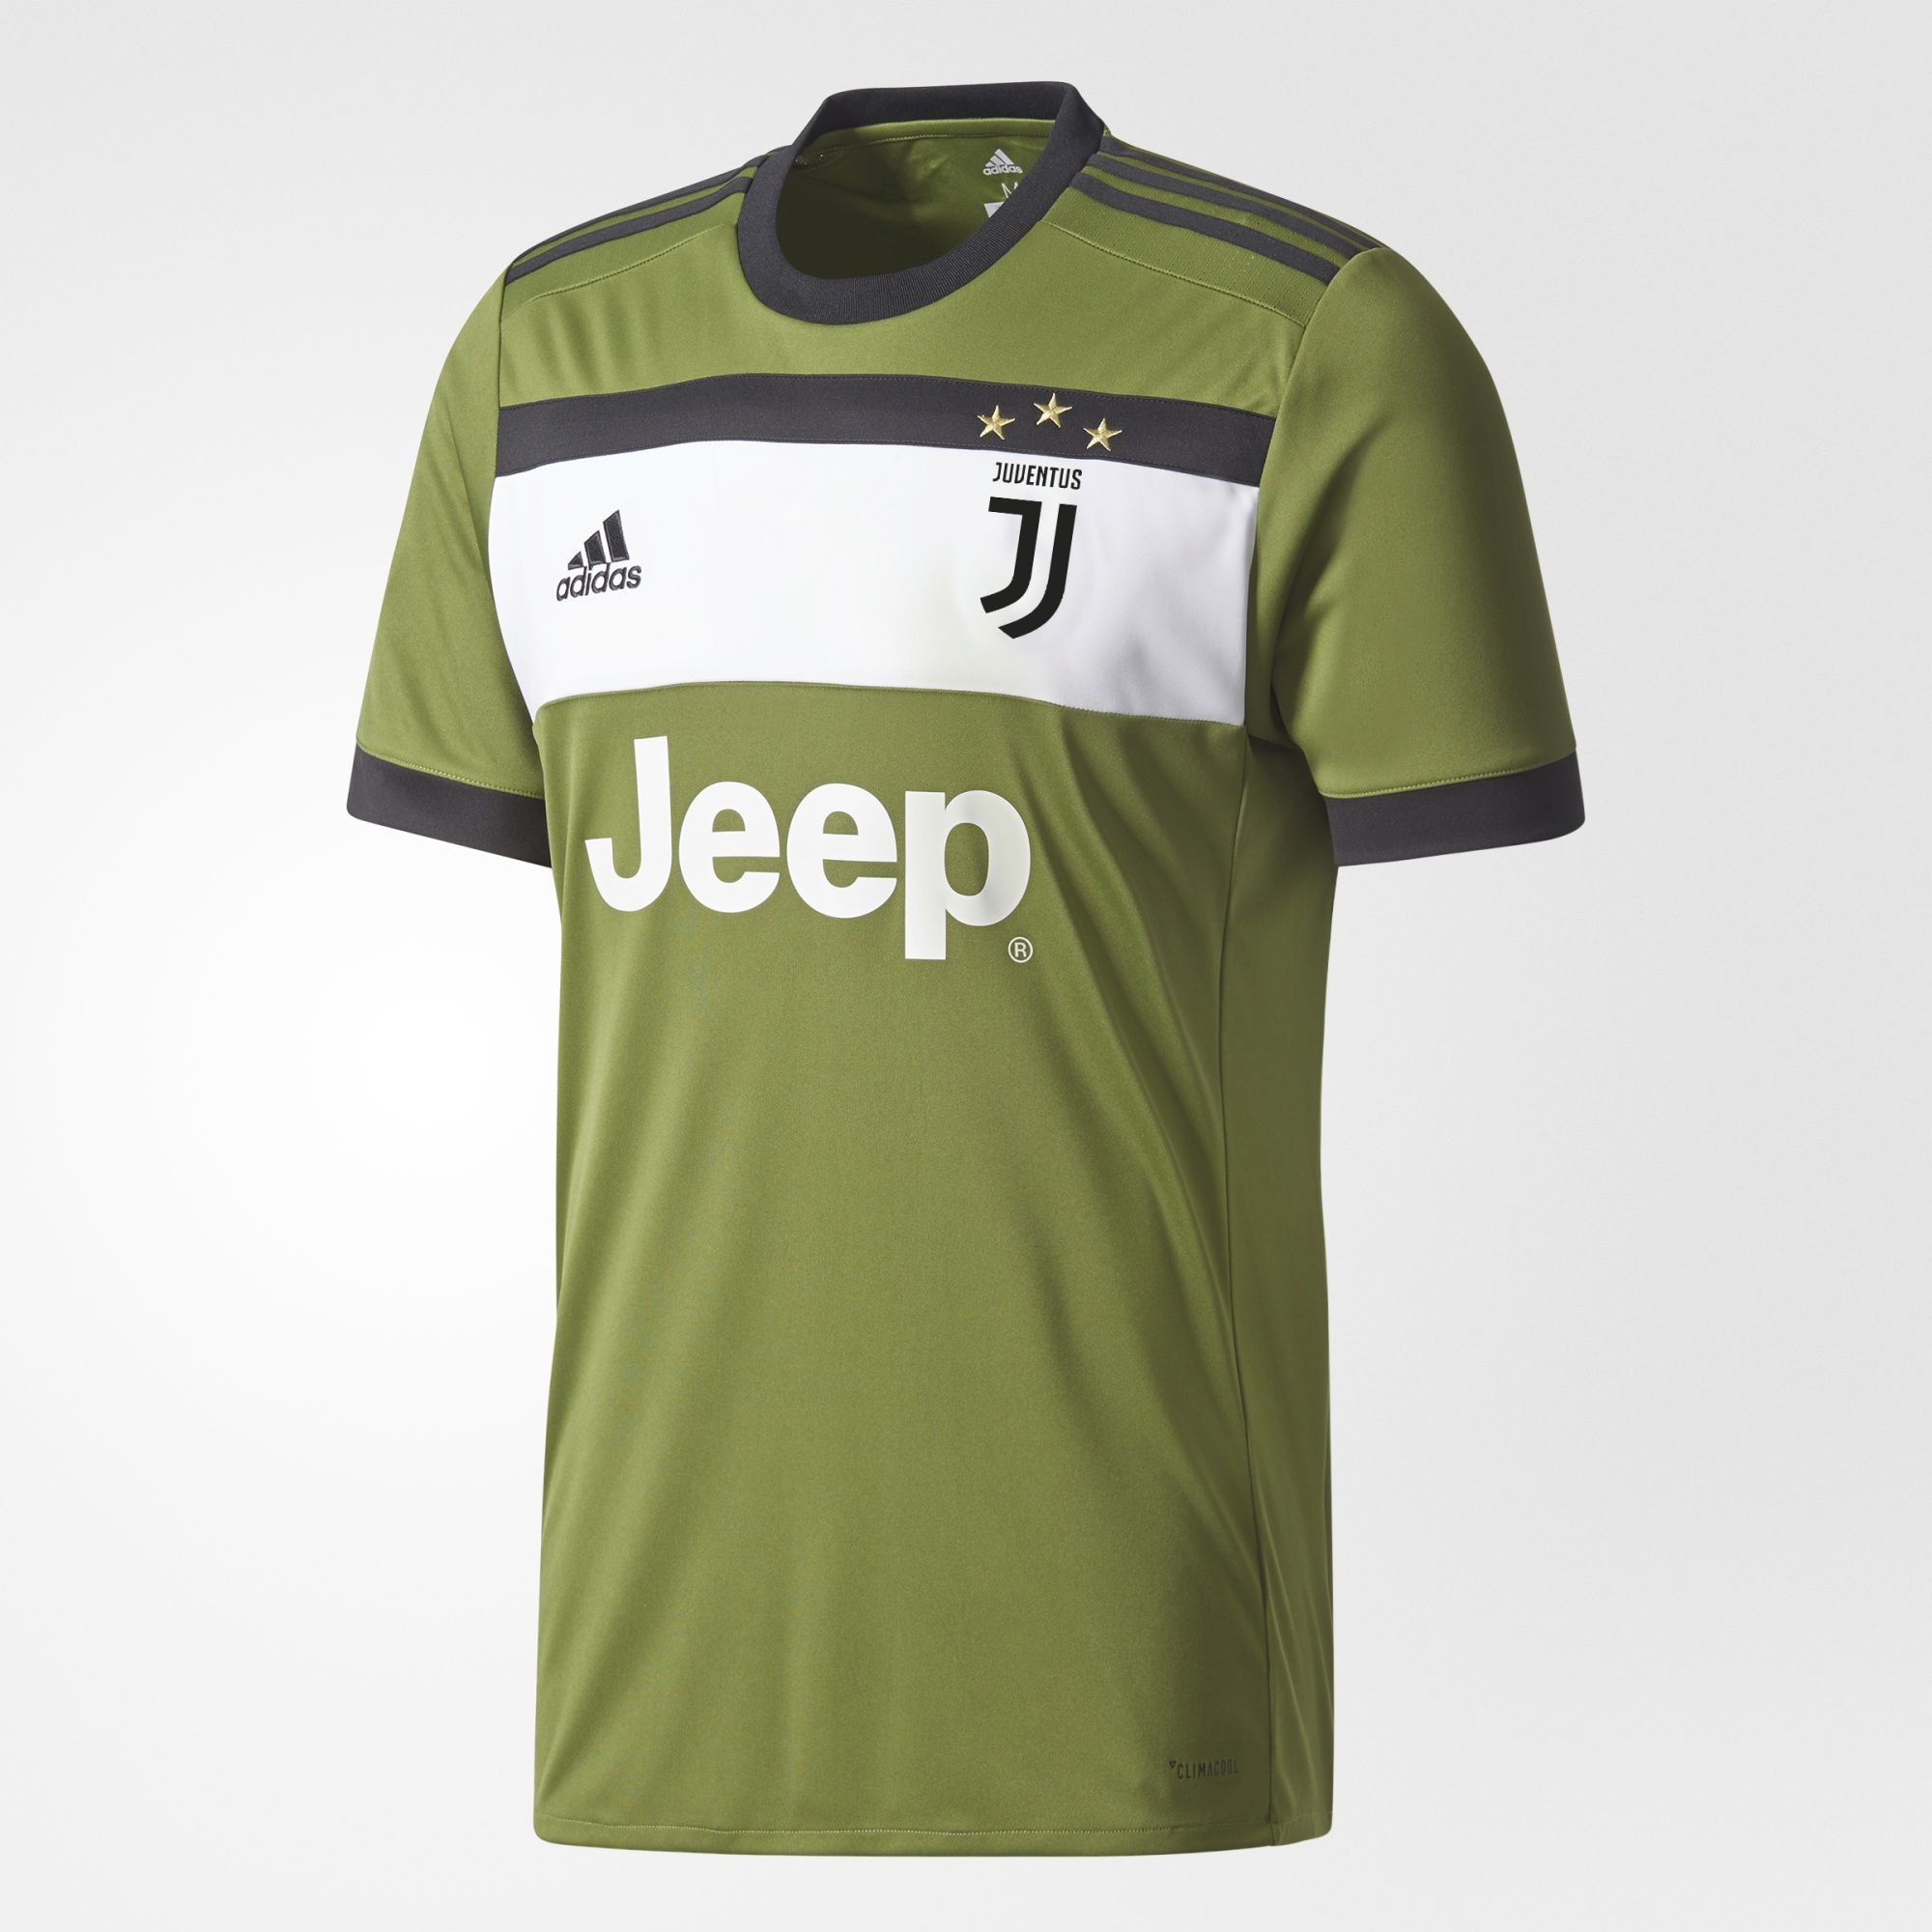 af3b44c27 ... Click to enlarge image juventus 17 18 adidas third kit d.jpg ...